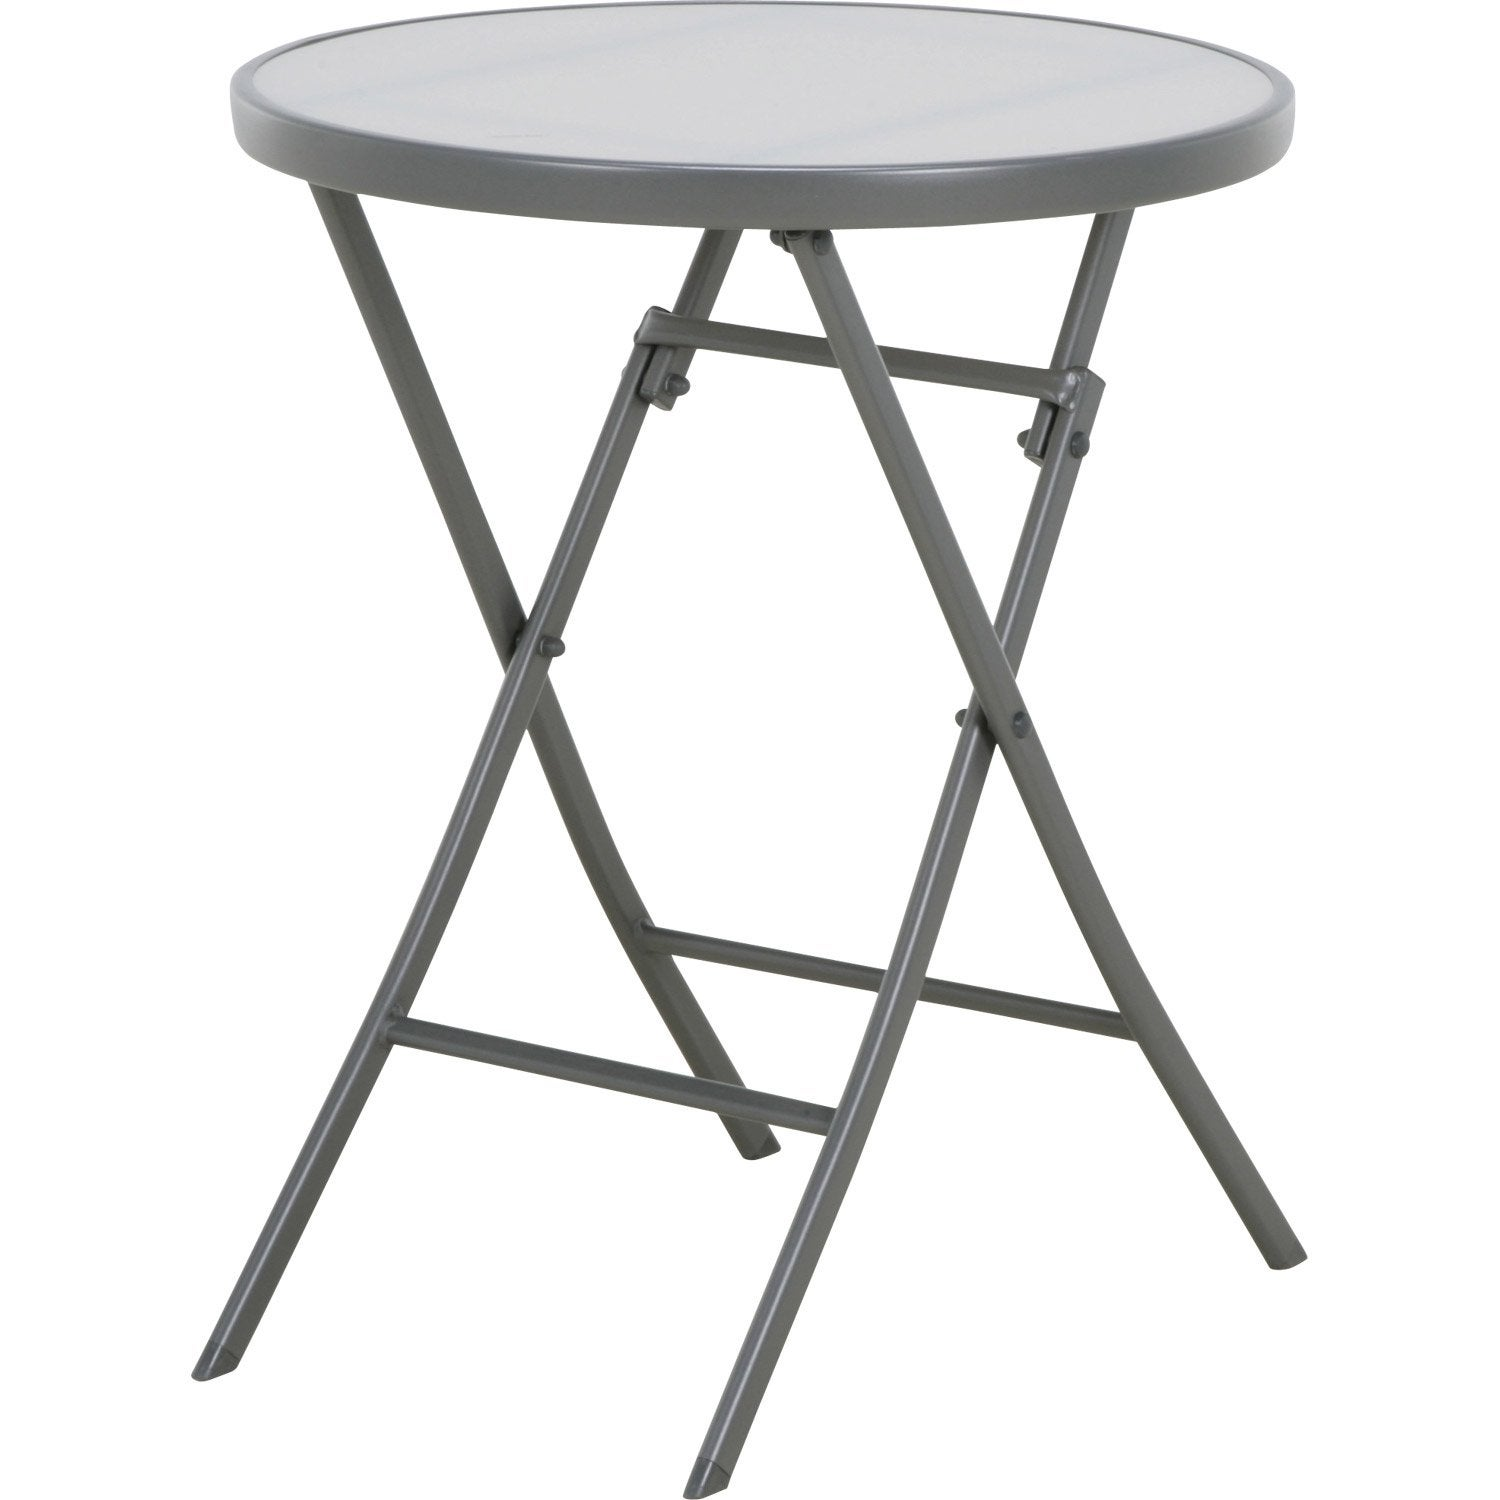 Table de jardin naterial denver ronde gris 2 personnes - Table ronde grise ...